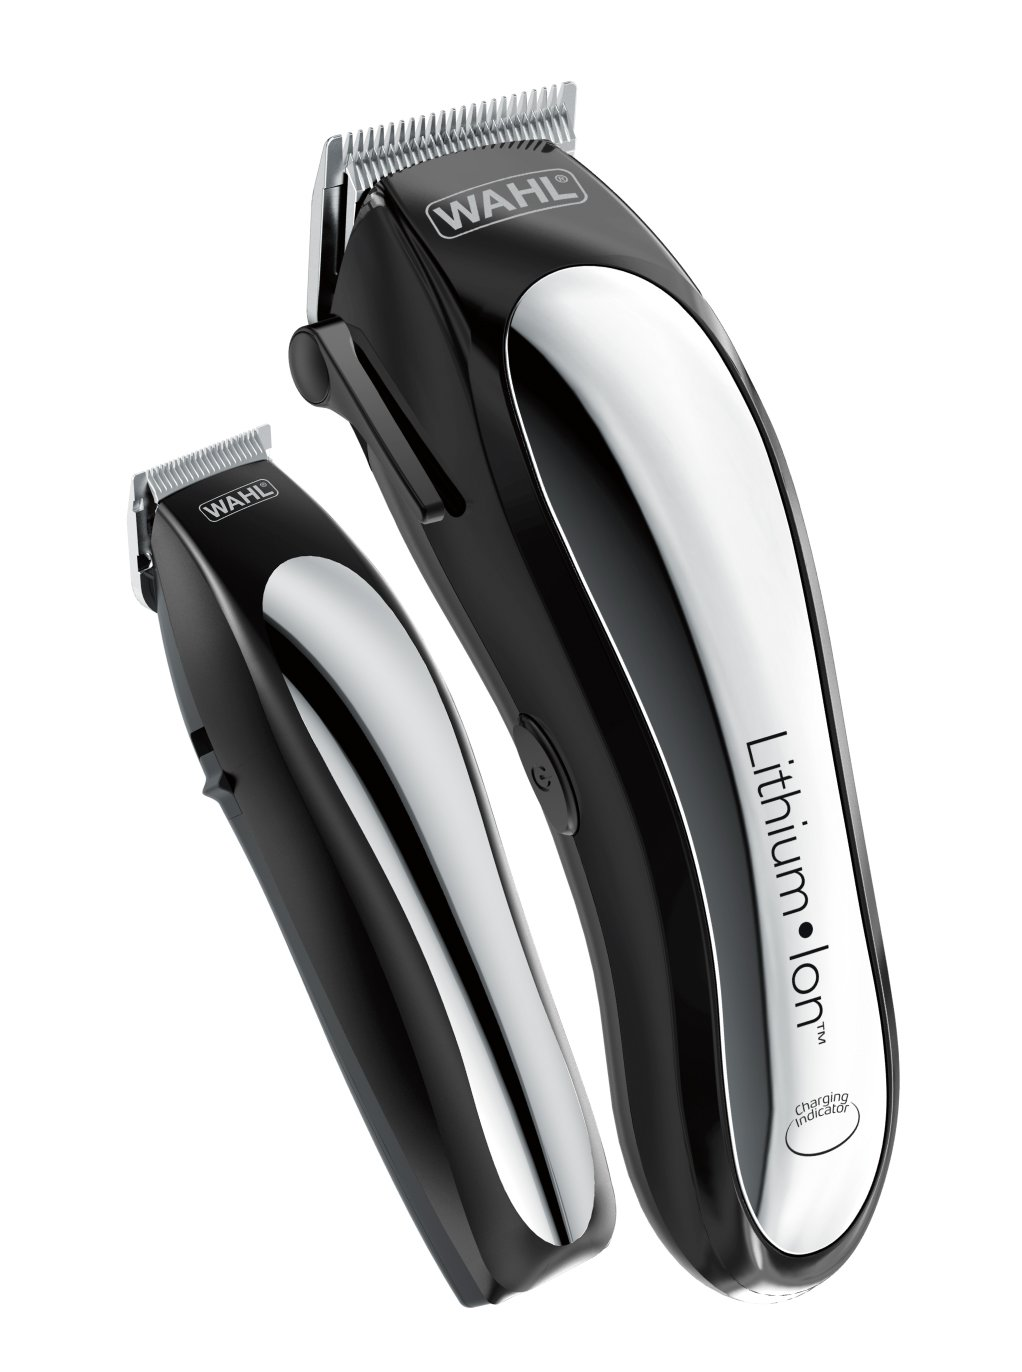 5 Best Hair Clippers For Men Reviews Amp Buyers Guide Oct